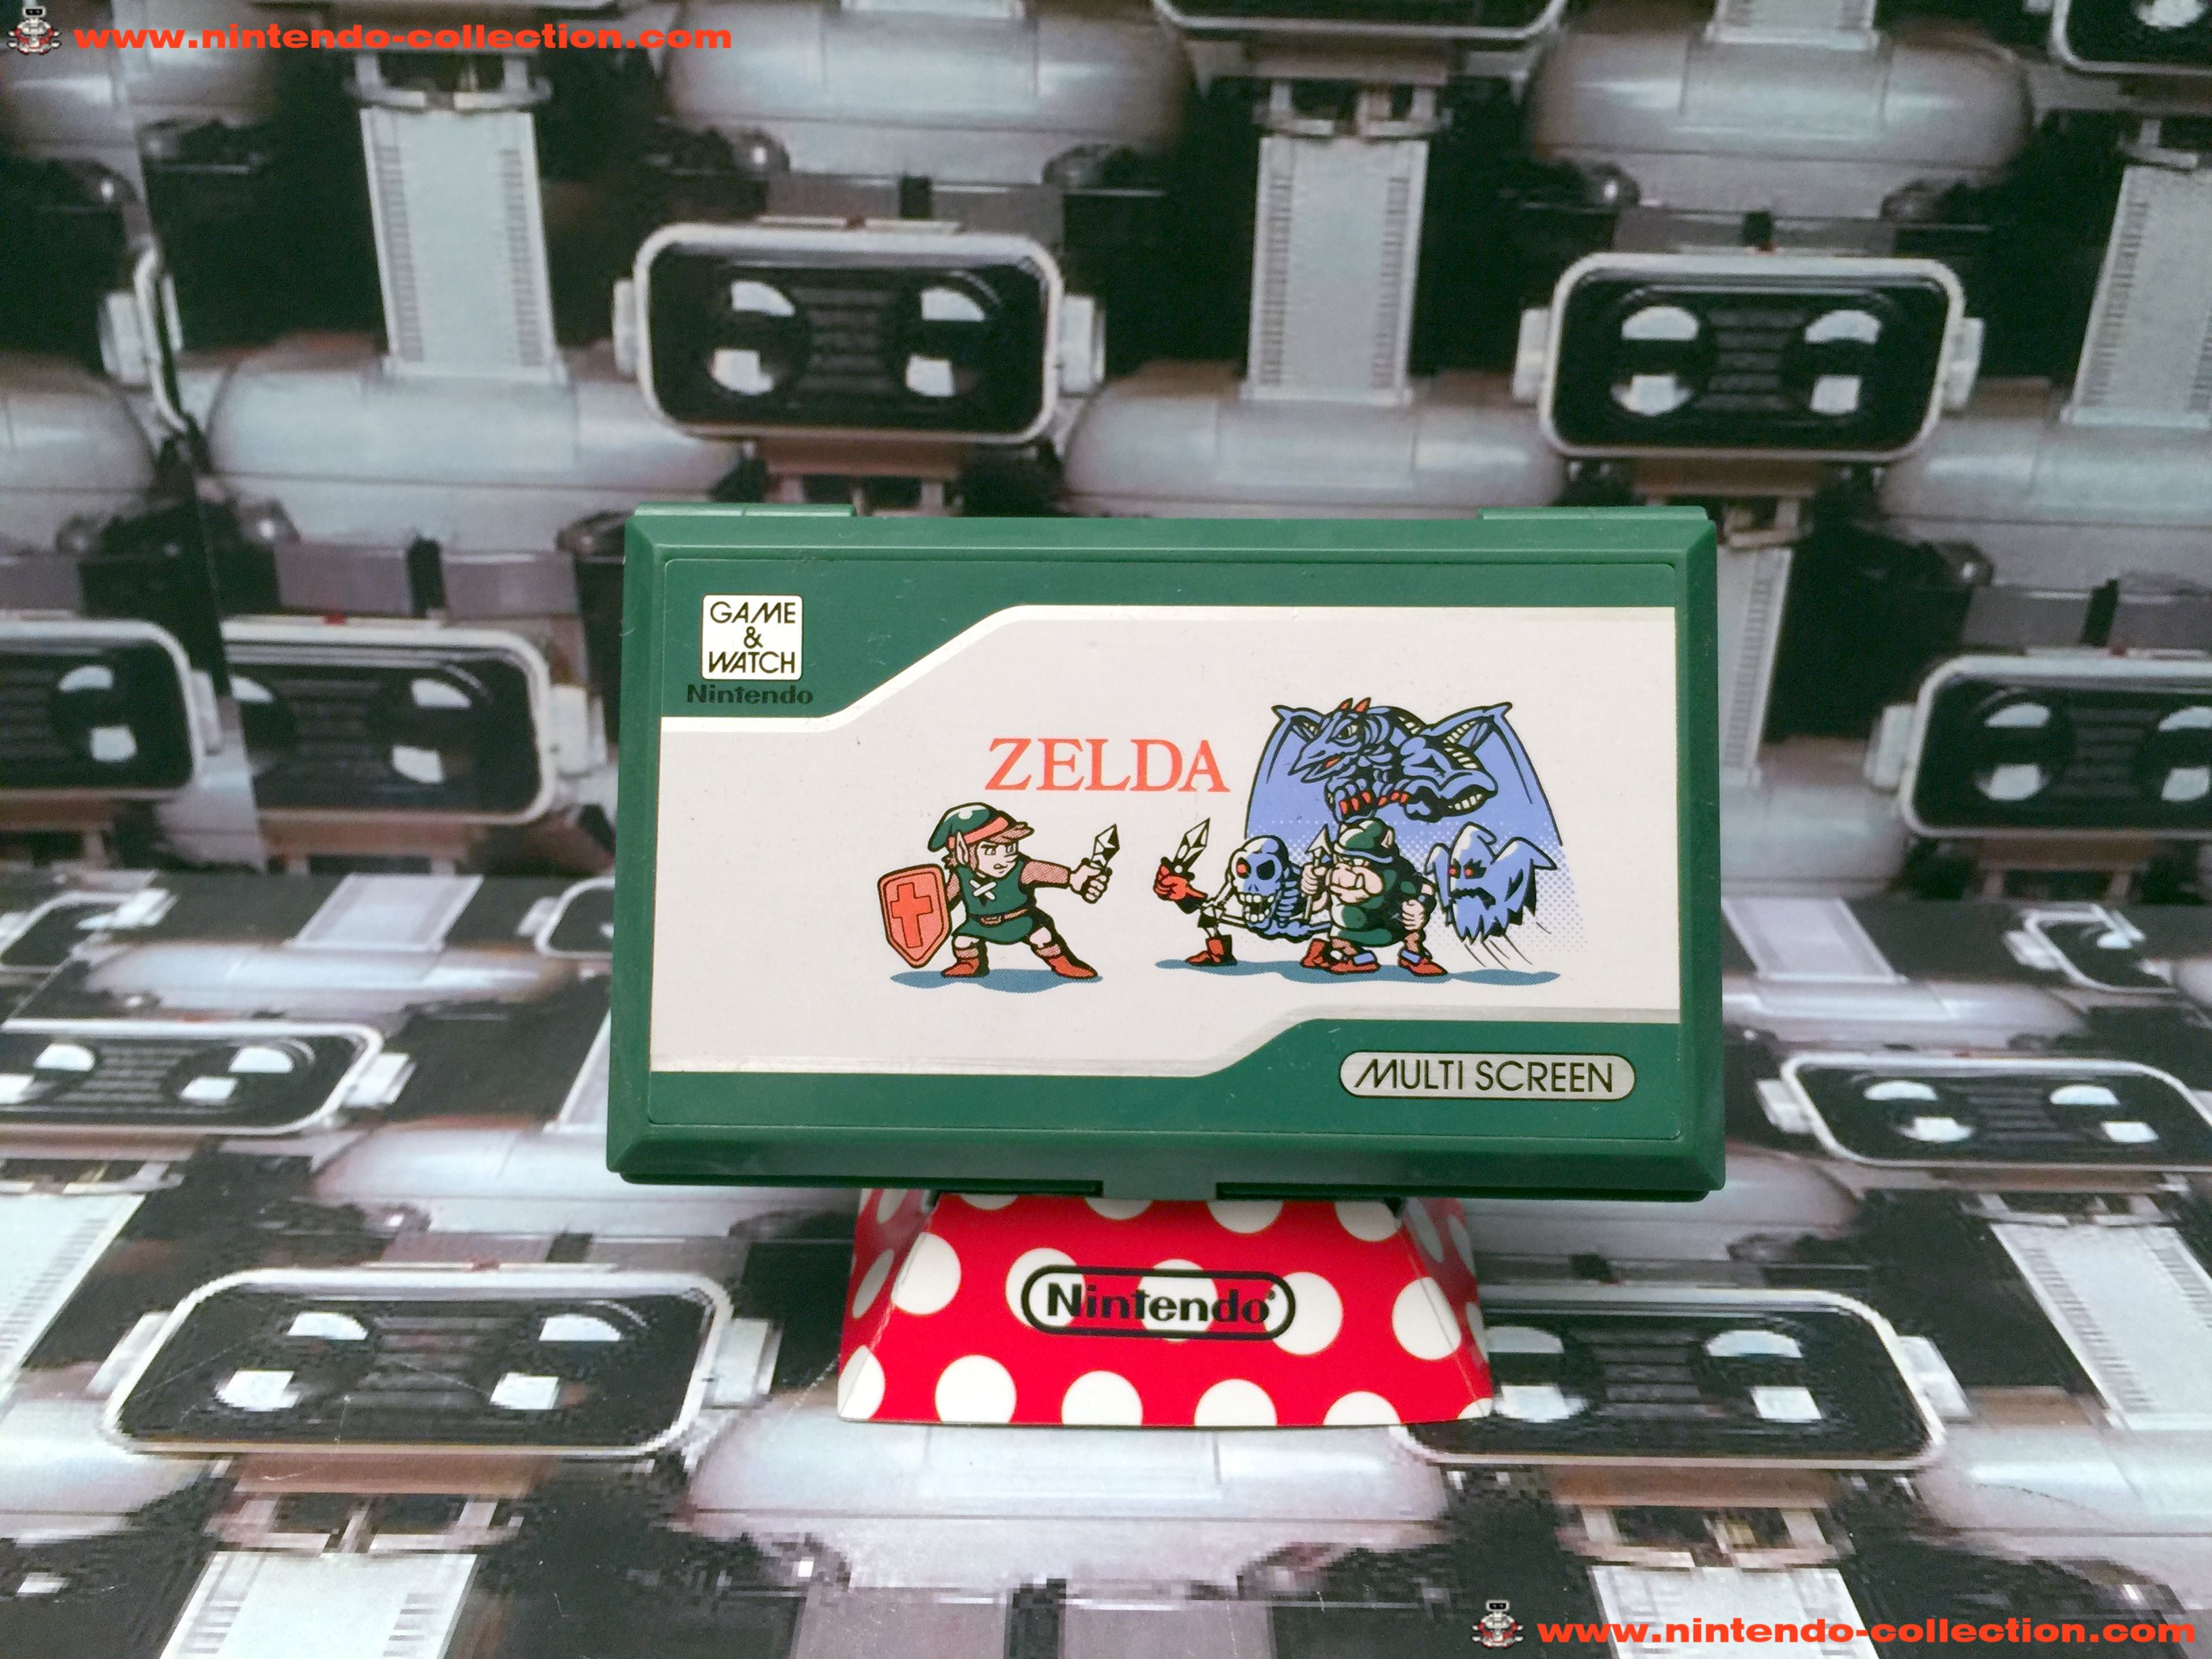 www.nintendo-collection.com - Game & Watch Zelda - 01